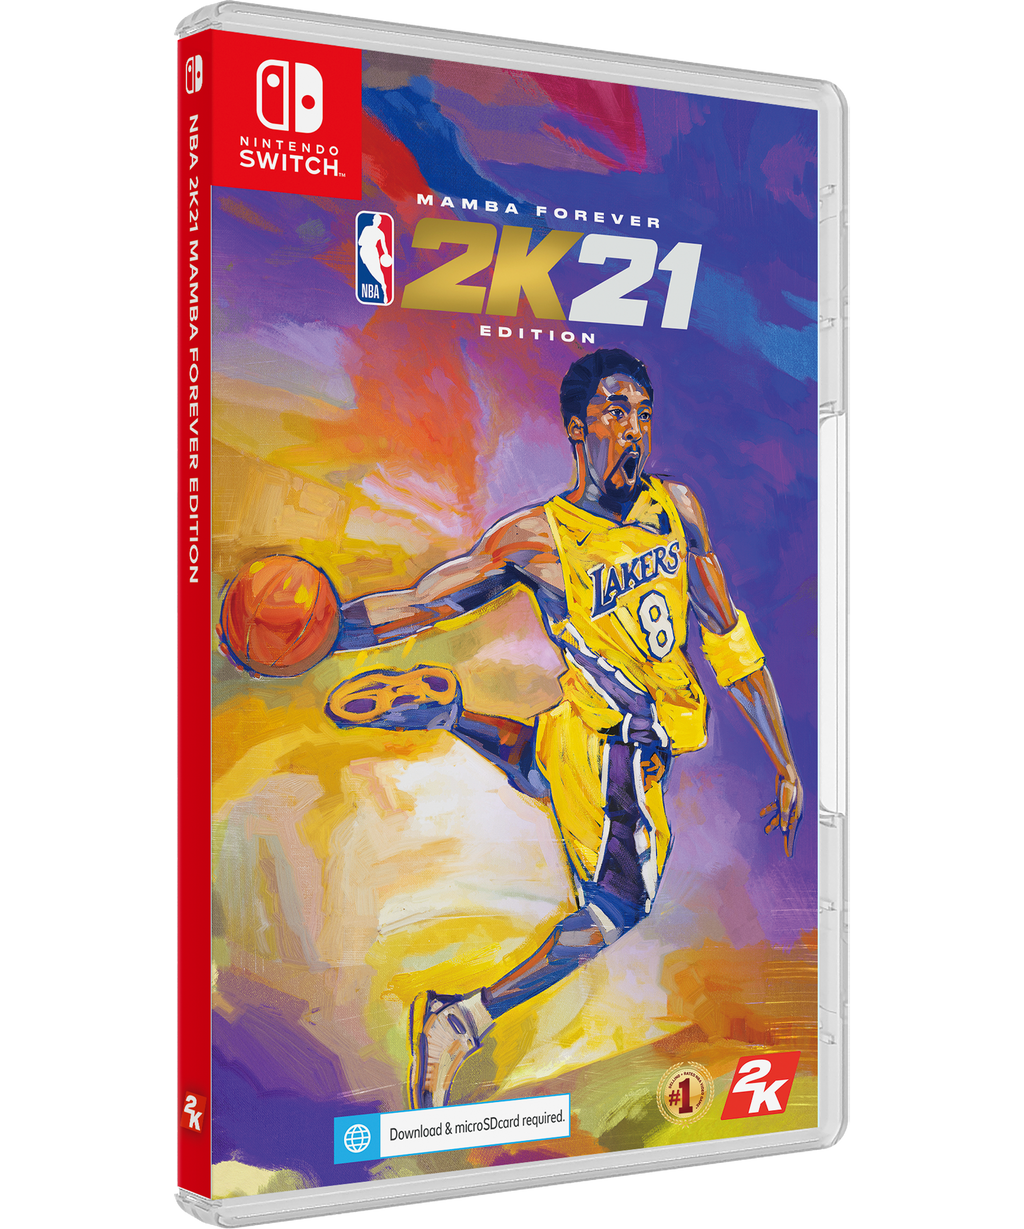 NBA 2K21 Mamba Forever Edition Nintendo Switch